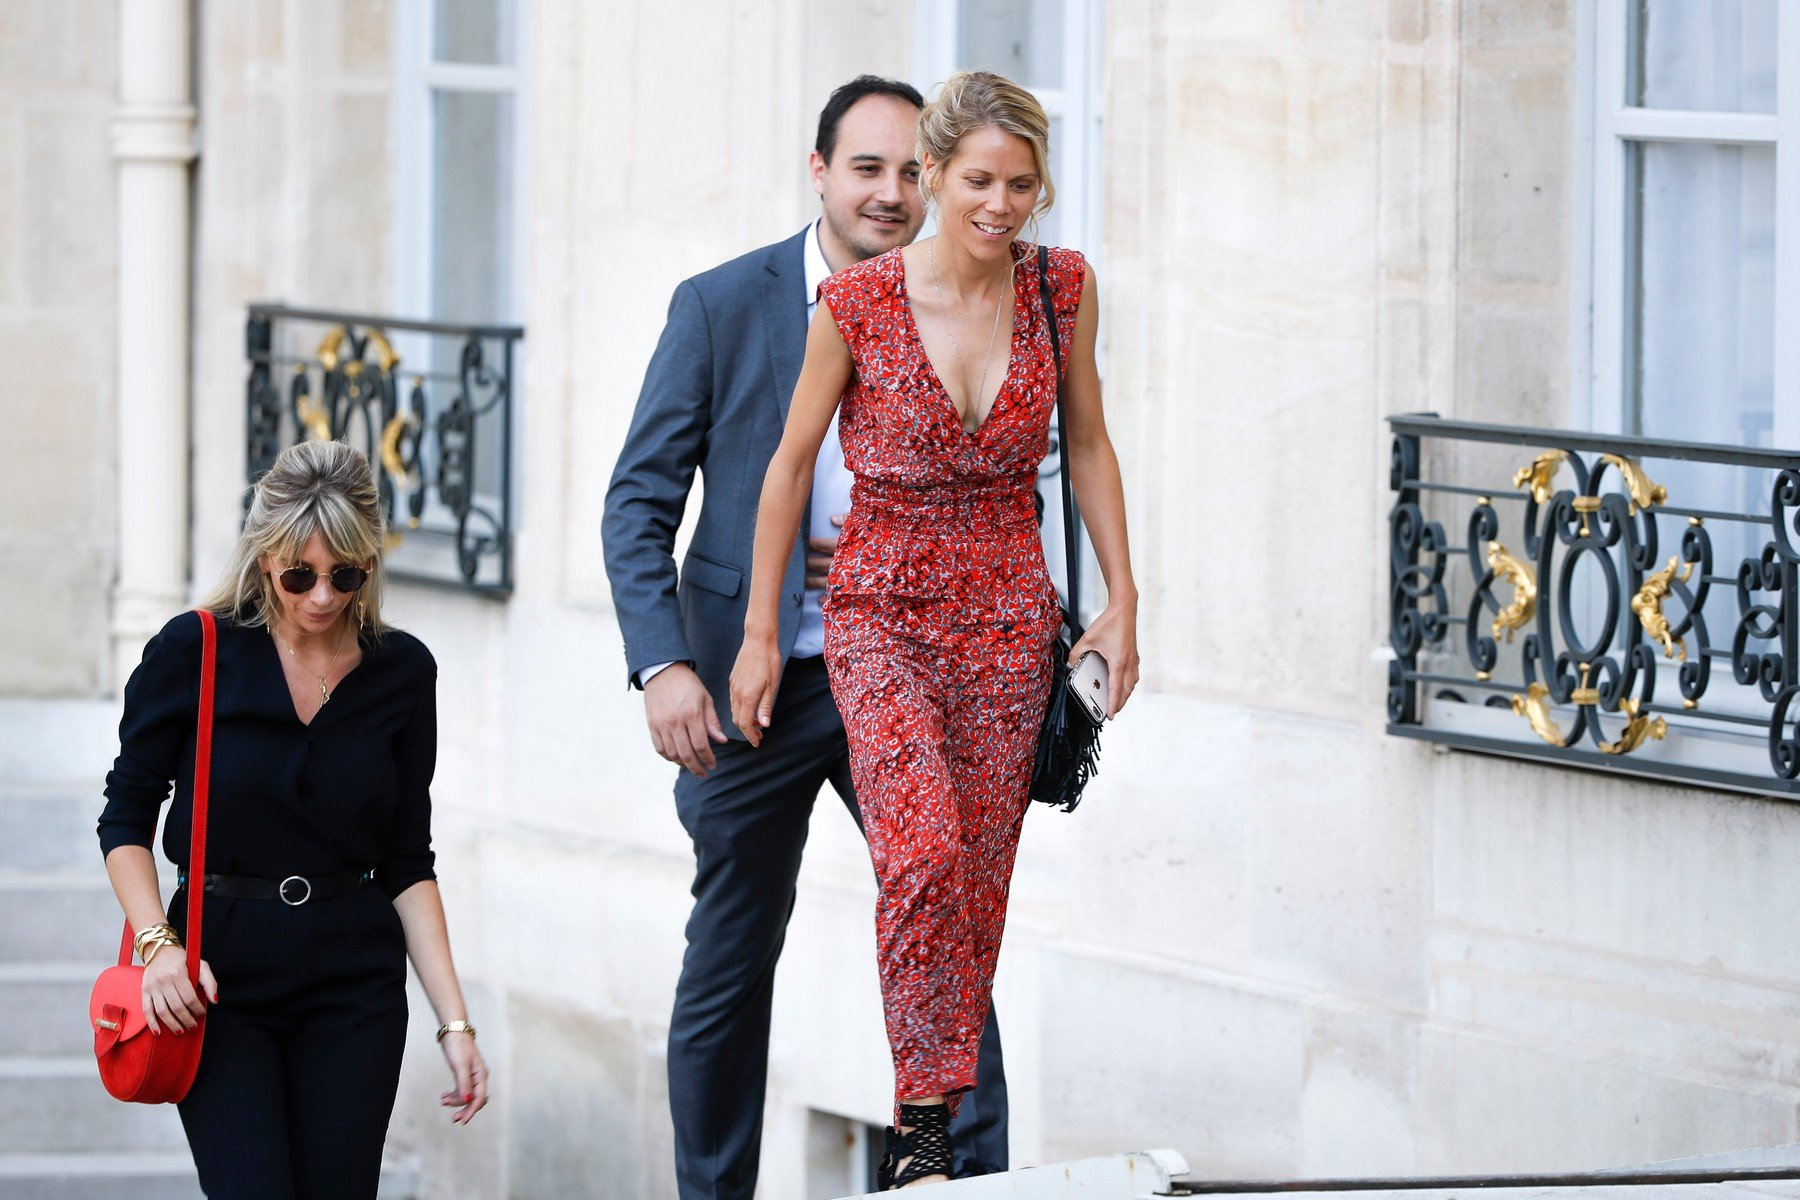 Tiphaine Auziere, Laurence Auzičre-Jourdan and it husband during the reception of the French team at Elysee after winning the 2018 FIFA World Cup Russia on July Monday 16, 2018 in Paris, France, Europe - Photo Stephane Allaman / KCS PRESSE, Image: 378041394, License: Rights-managed, Restrictions: , Model Release: no, Credit line: Profimedia, KCS Presse